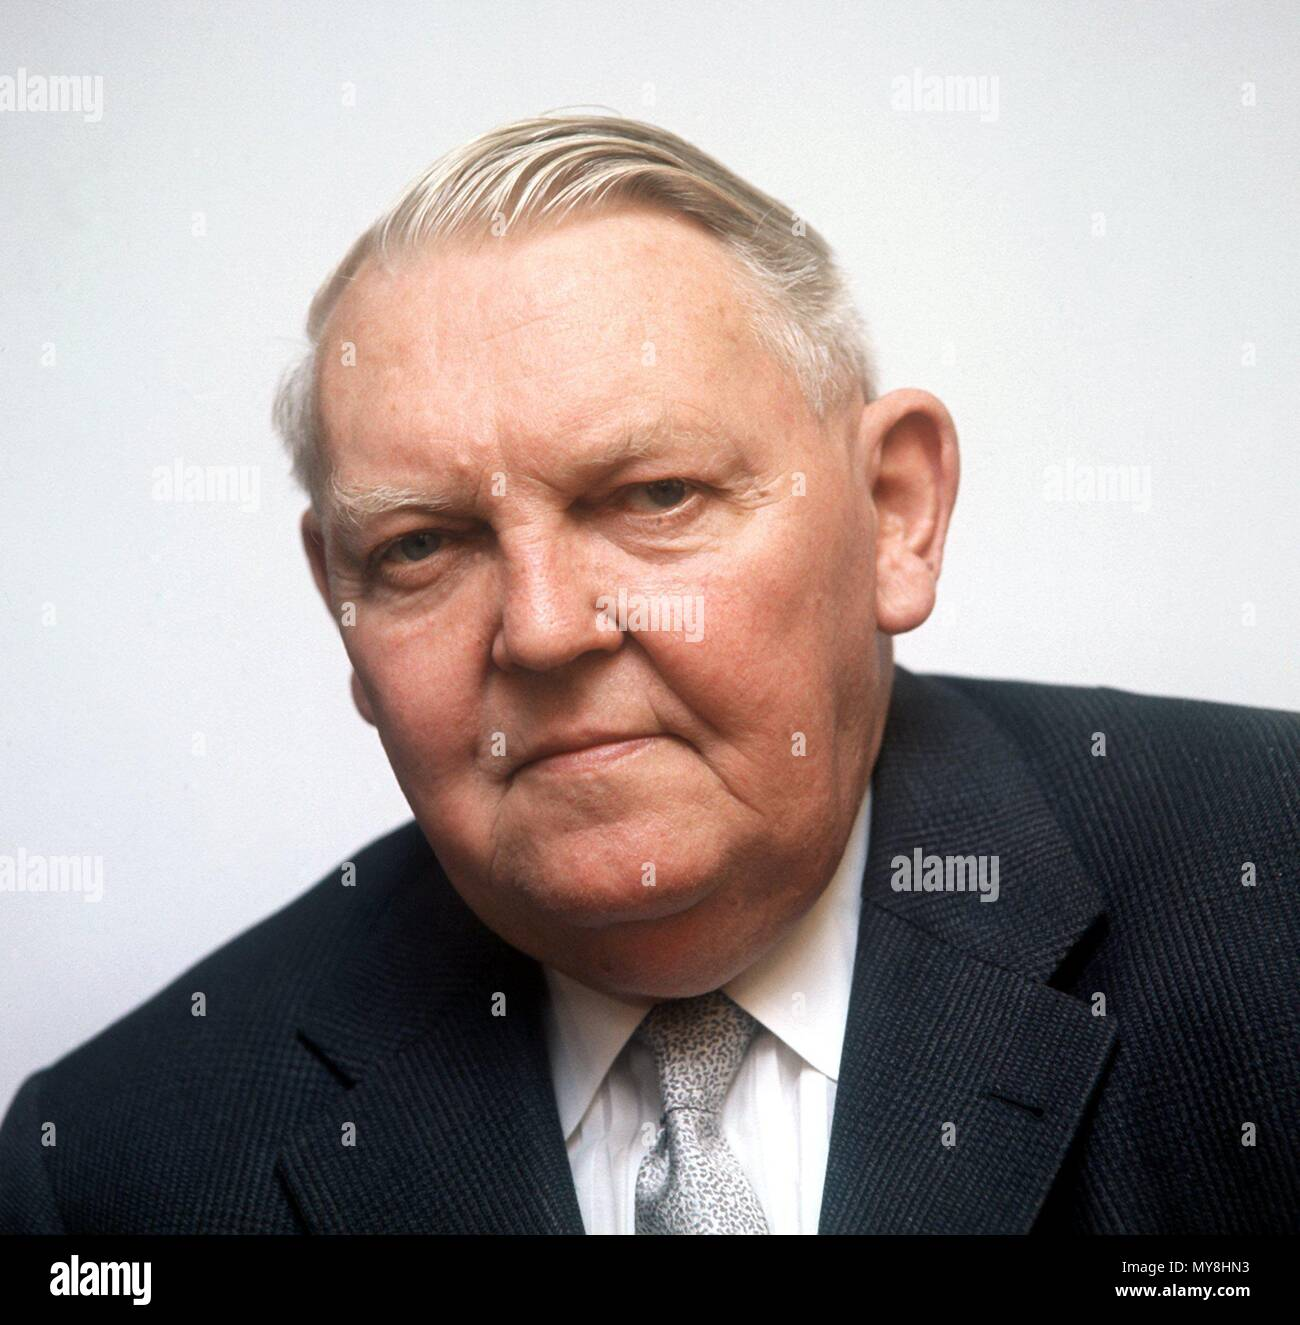 Professor Ludwig Erhard, the 'father of the German economic miracle', undated.  | usage worldwide - Stock Image